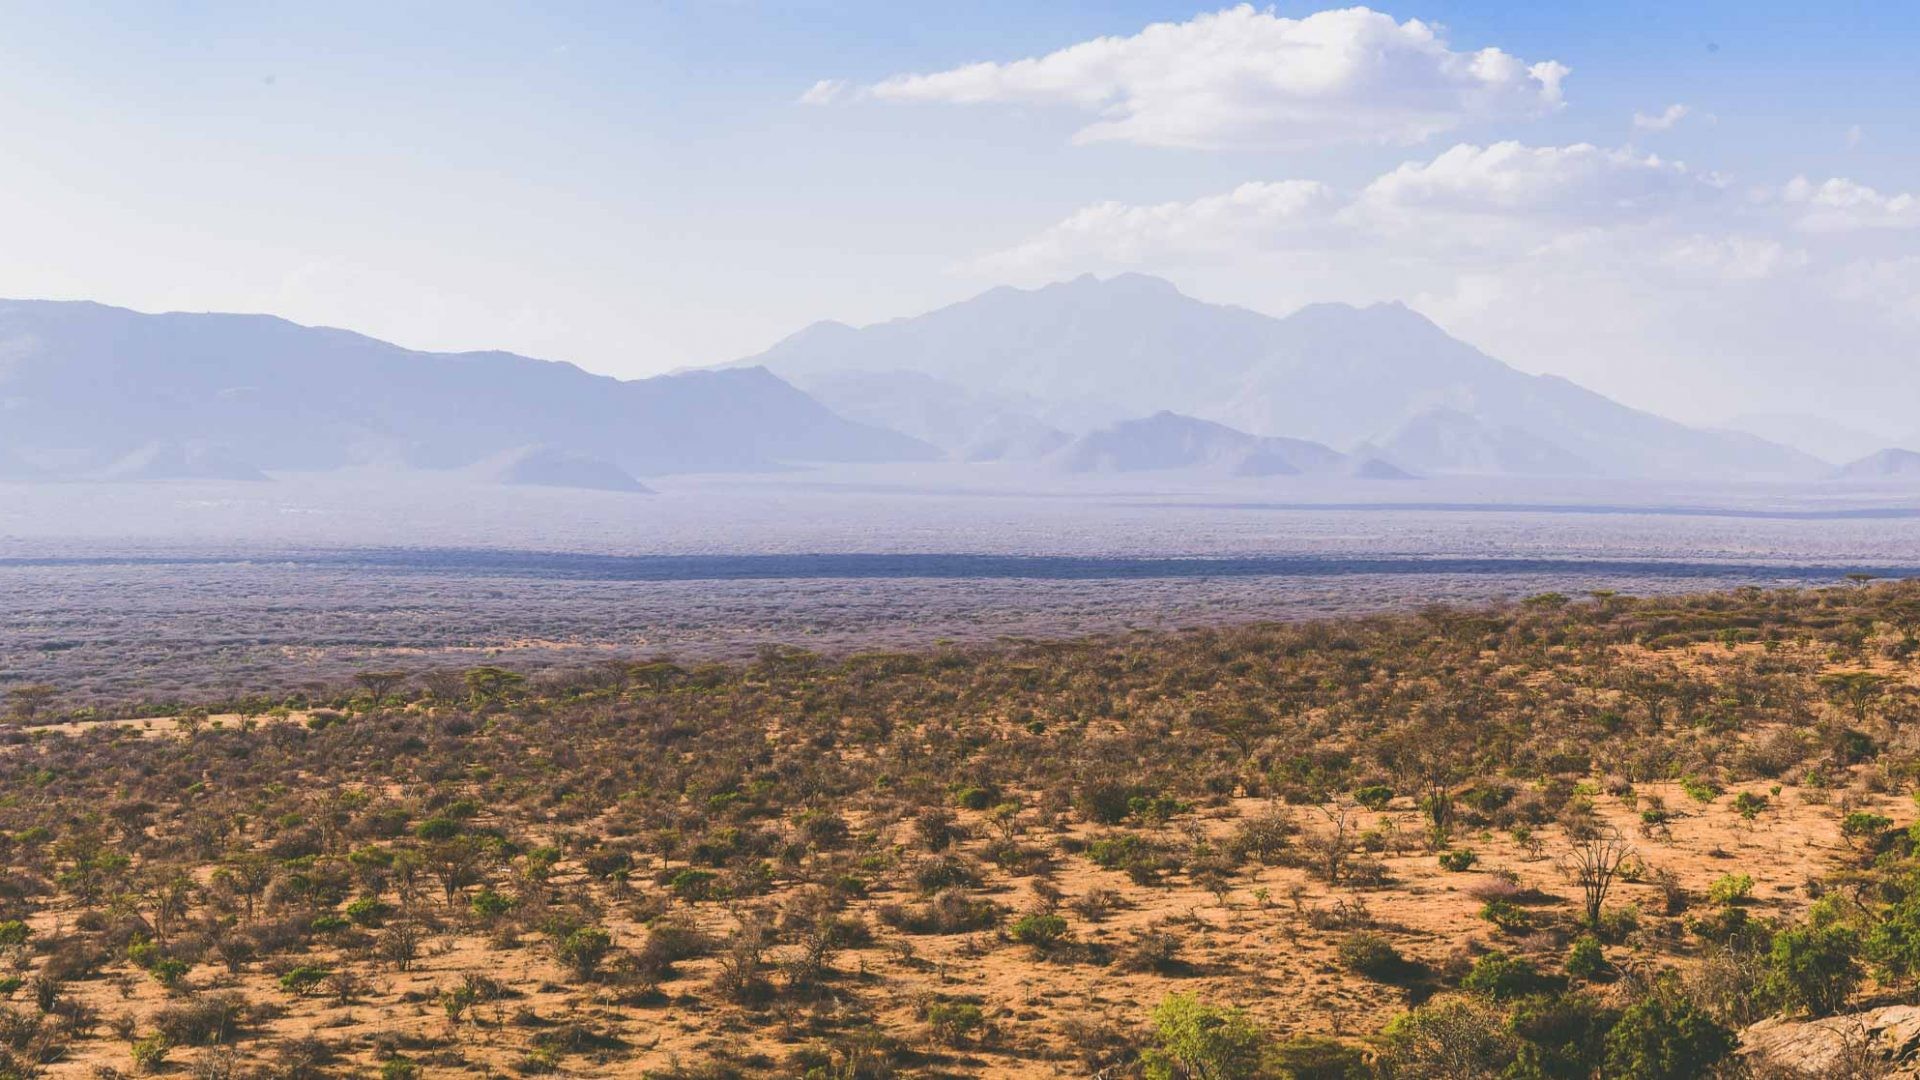 The vast, dry plains of Samburu, Kenya.